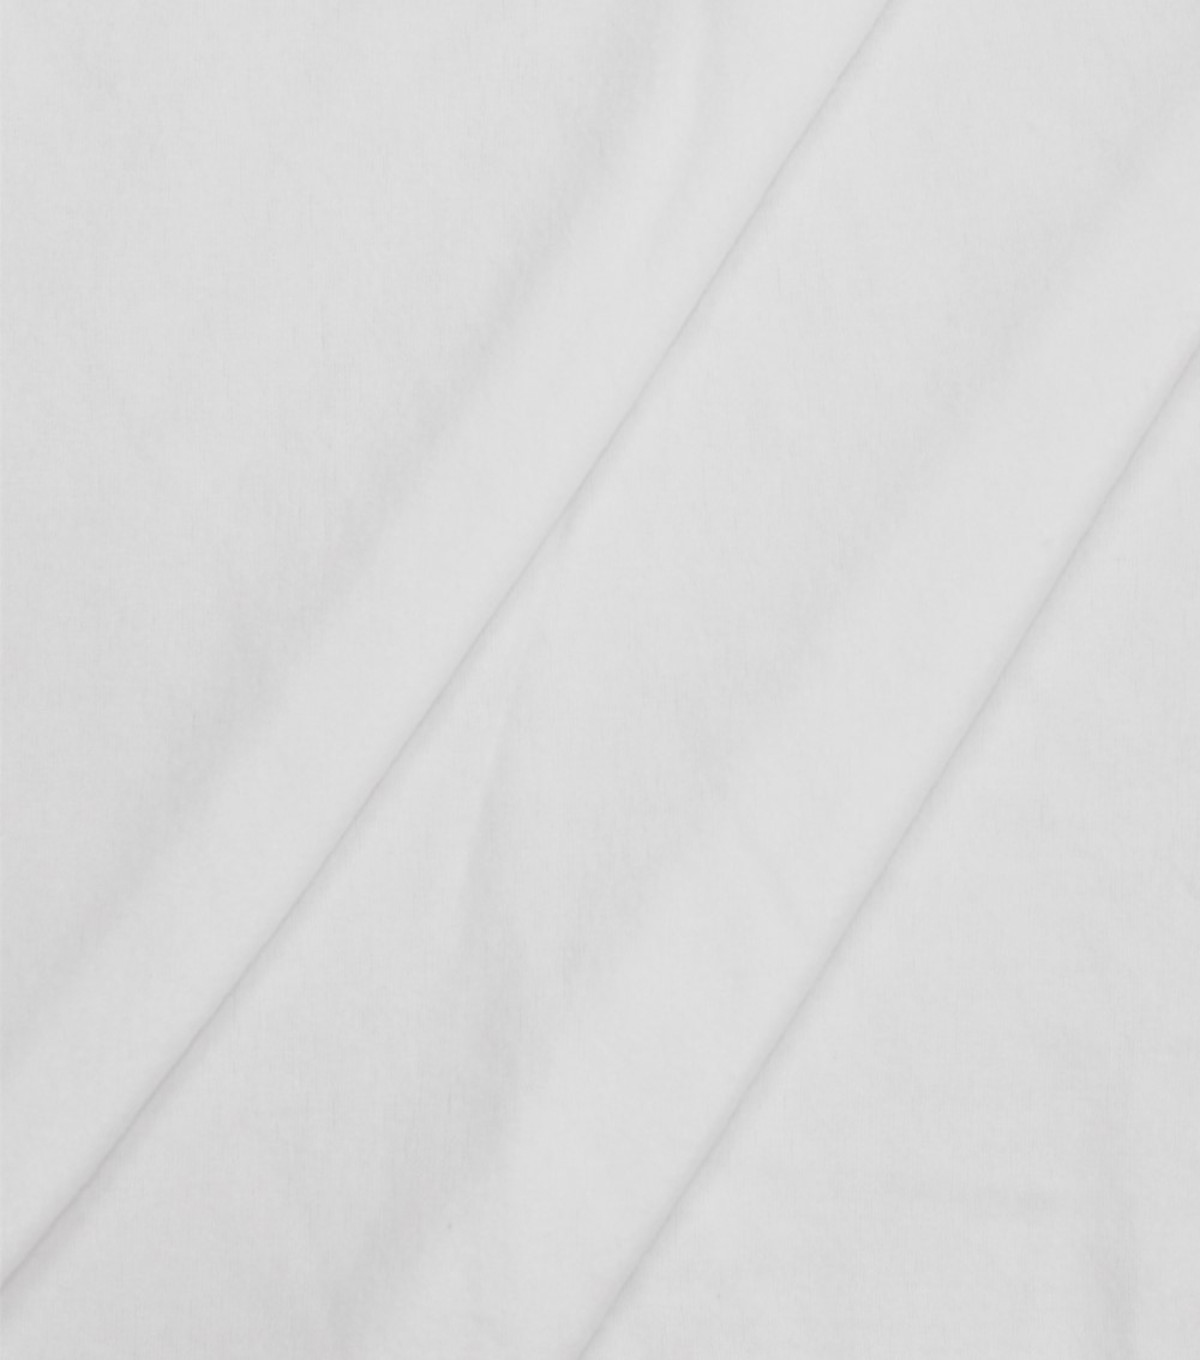 Roc-lon Flannel Collection Muslin 15 yds-White